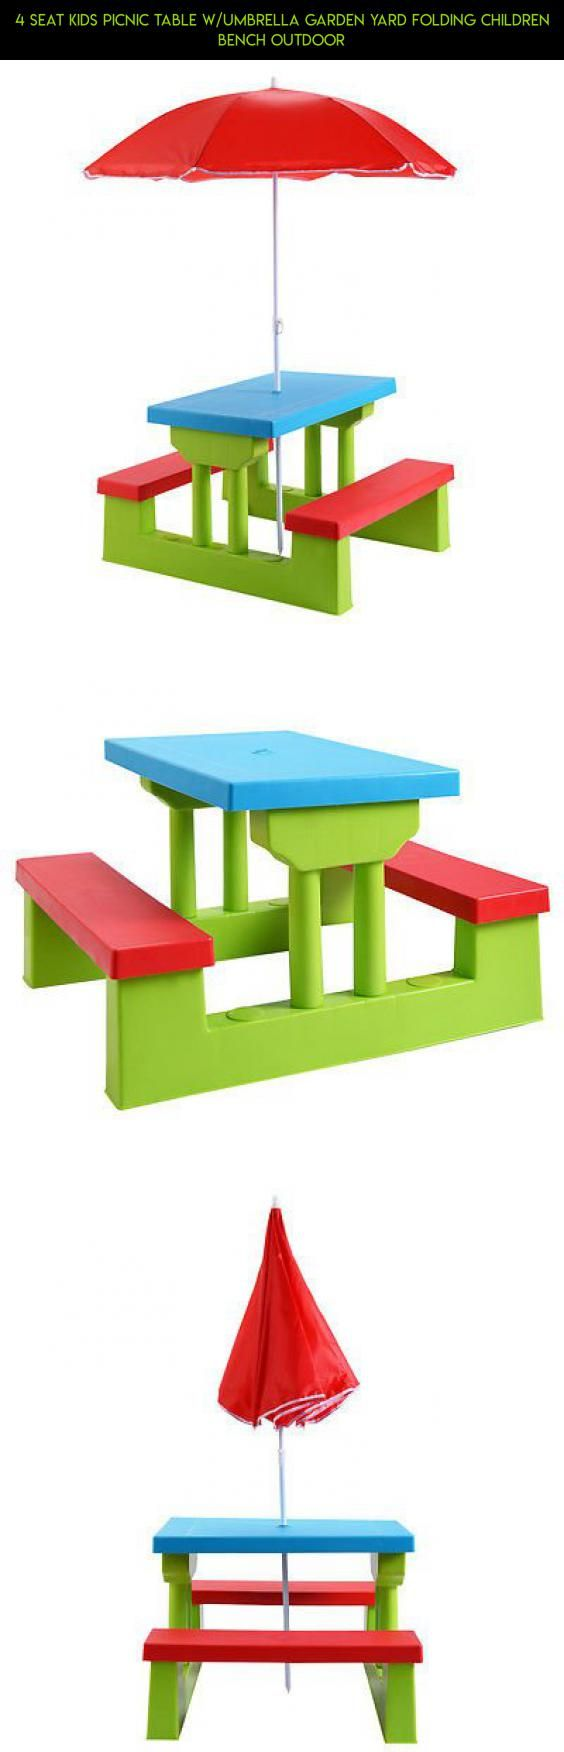 Small patio table with umbrella hole 45 quot picnic table - 4 Seat Kids Picnic Table W Umbrella Garden Yard Folding Children Bench Outdoor Furniture